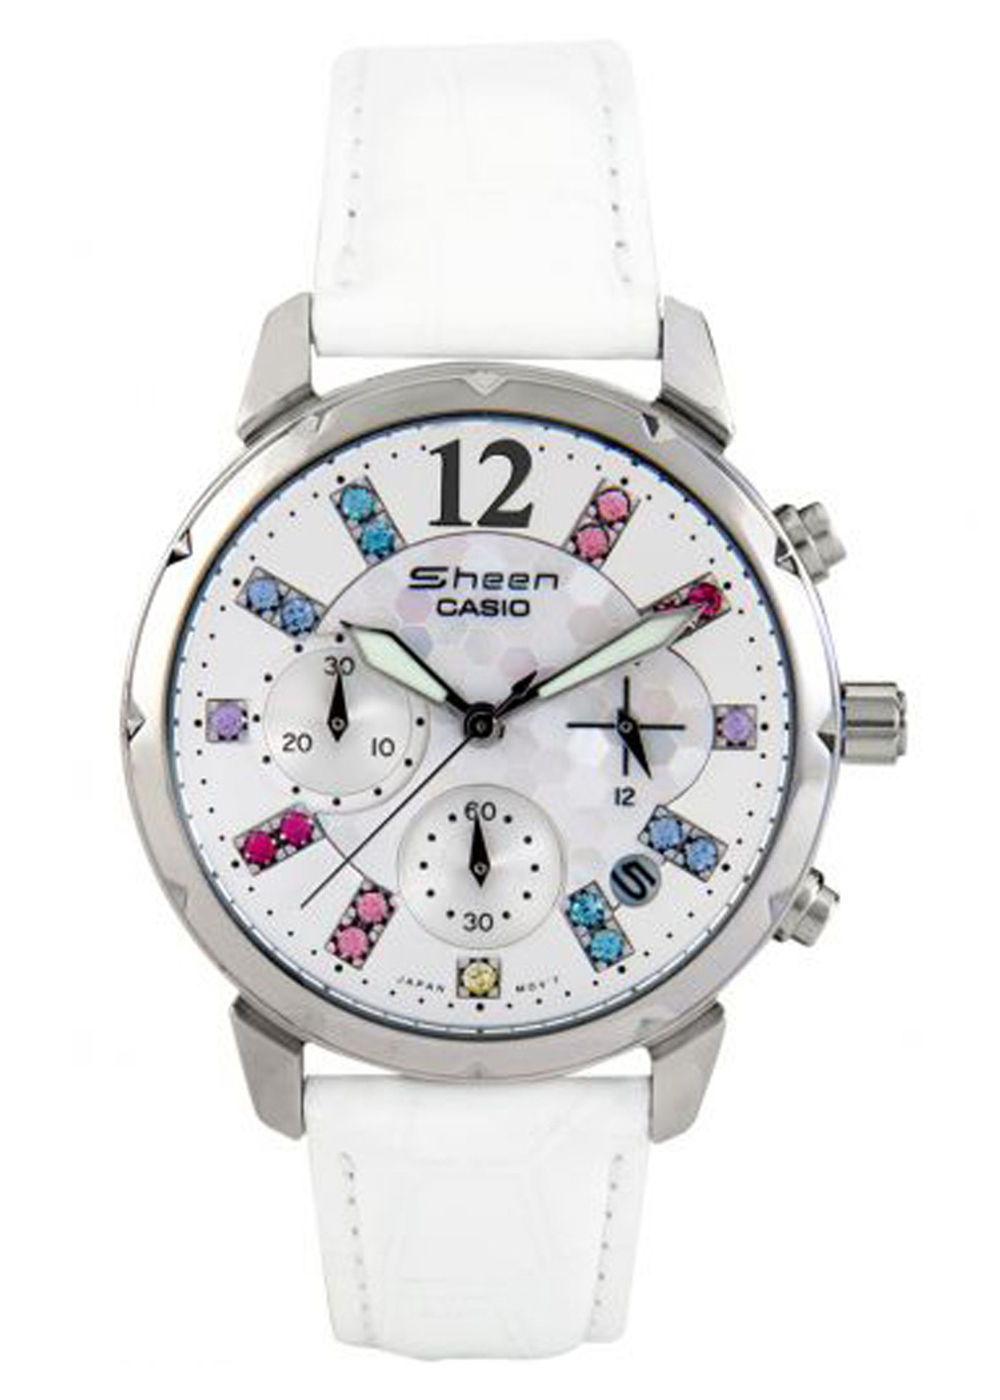 casio sheen sh 161 analog chronograph ladies watch shn 5012lp 7adr. Black Bedroom Furniture Sets. Home Design Ideas